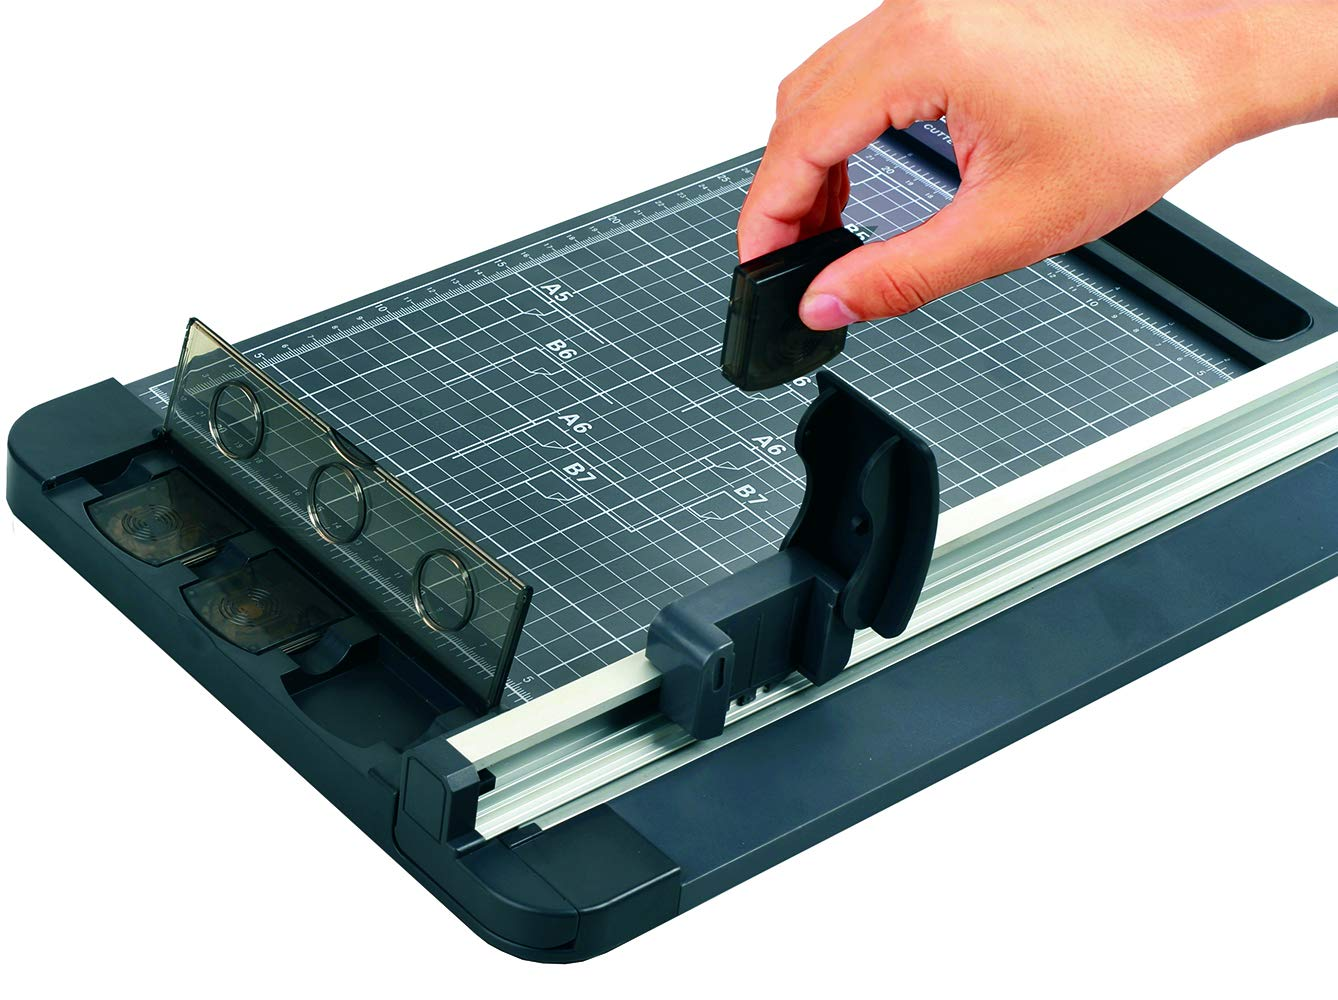 Jielisi 18 Inch Professional Rotary Paper Trimmer, A3 size 3-Ways Paper Cutter With Sliding Rotary Blade, 8 Sheet Capacity, Black FBA_Work4U-959-1-A3